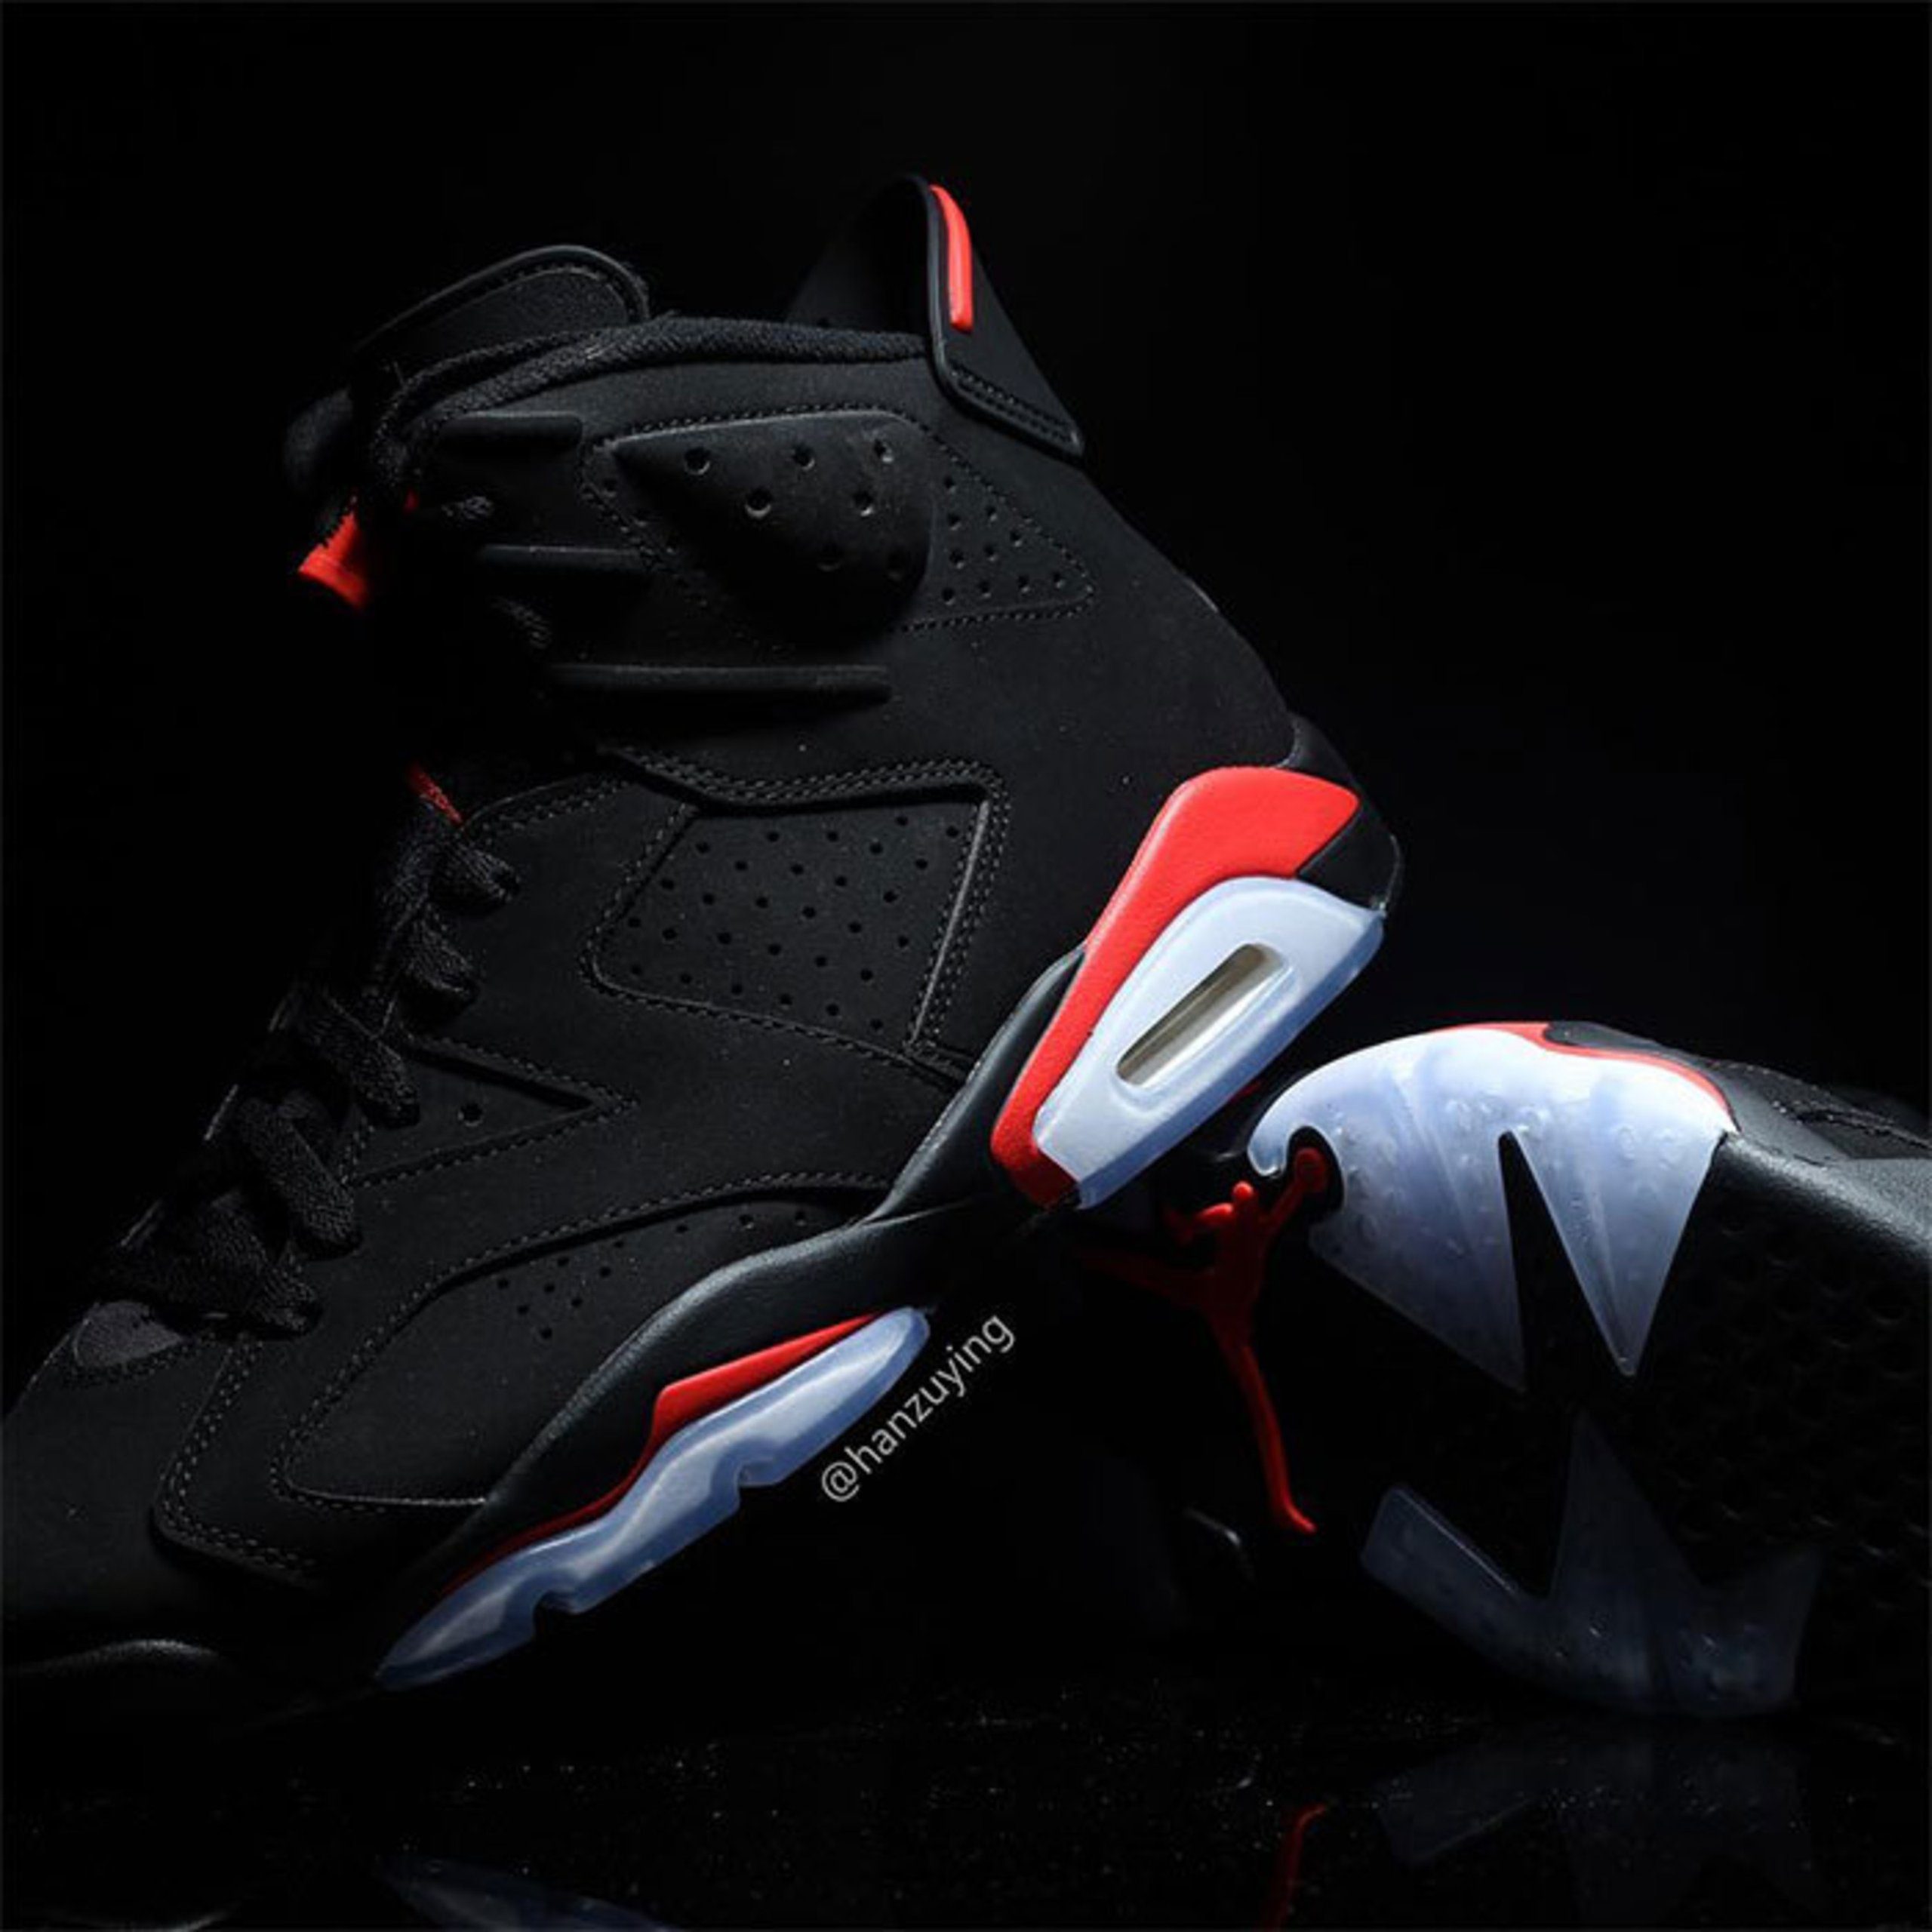 fd13a0fda198 A Closer Look at the 2019 Nike Air Jordan 6  Black Infrared  THE ICONIC  Edition